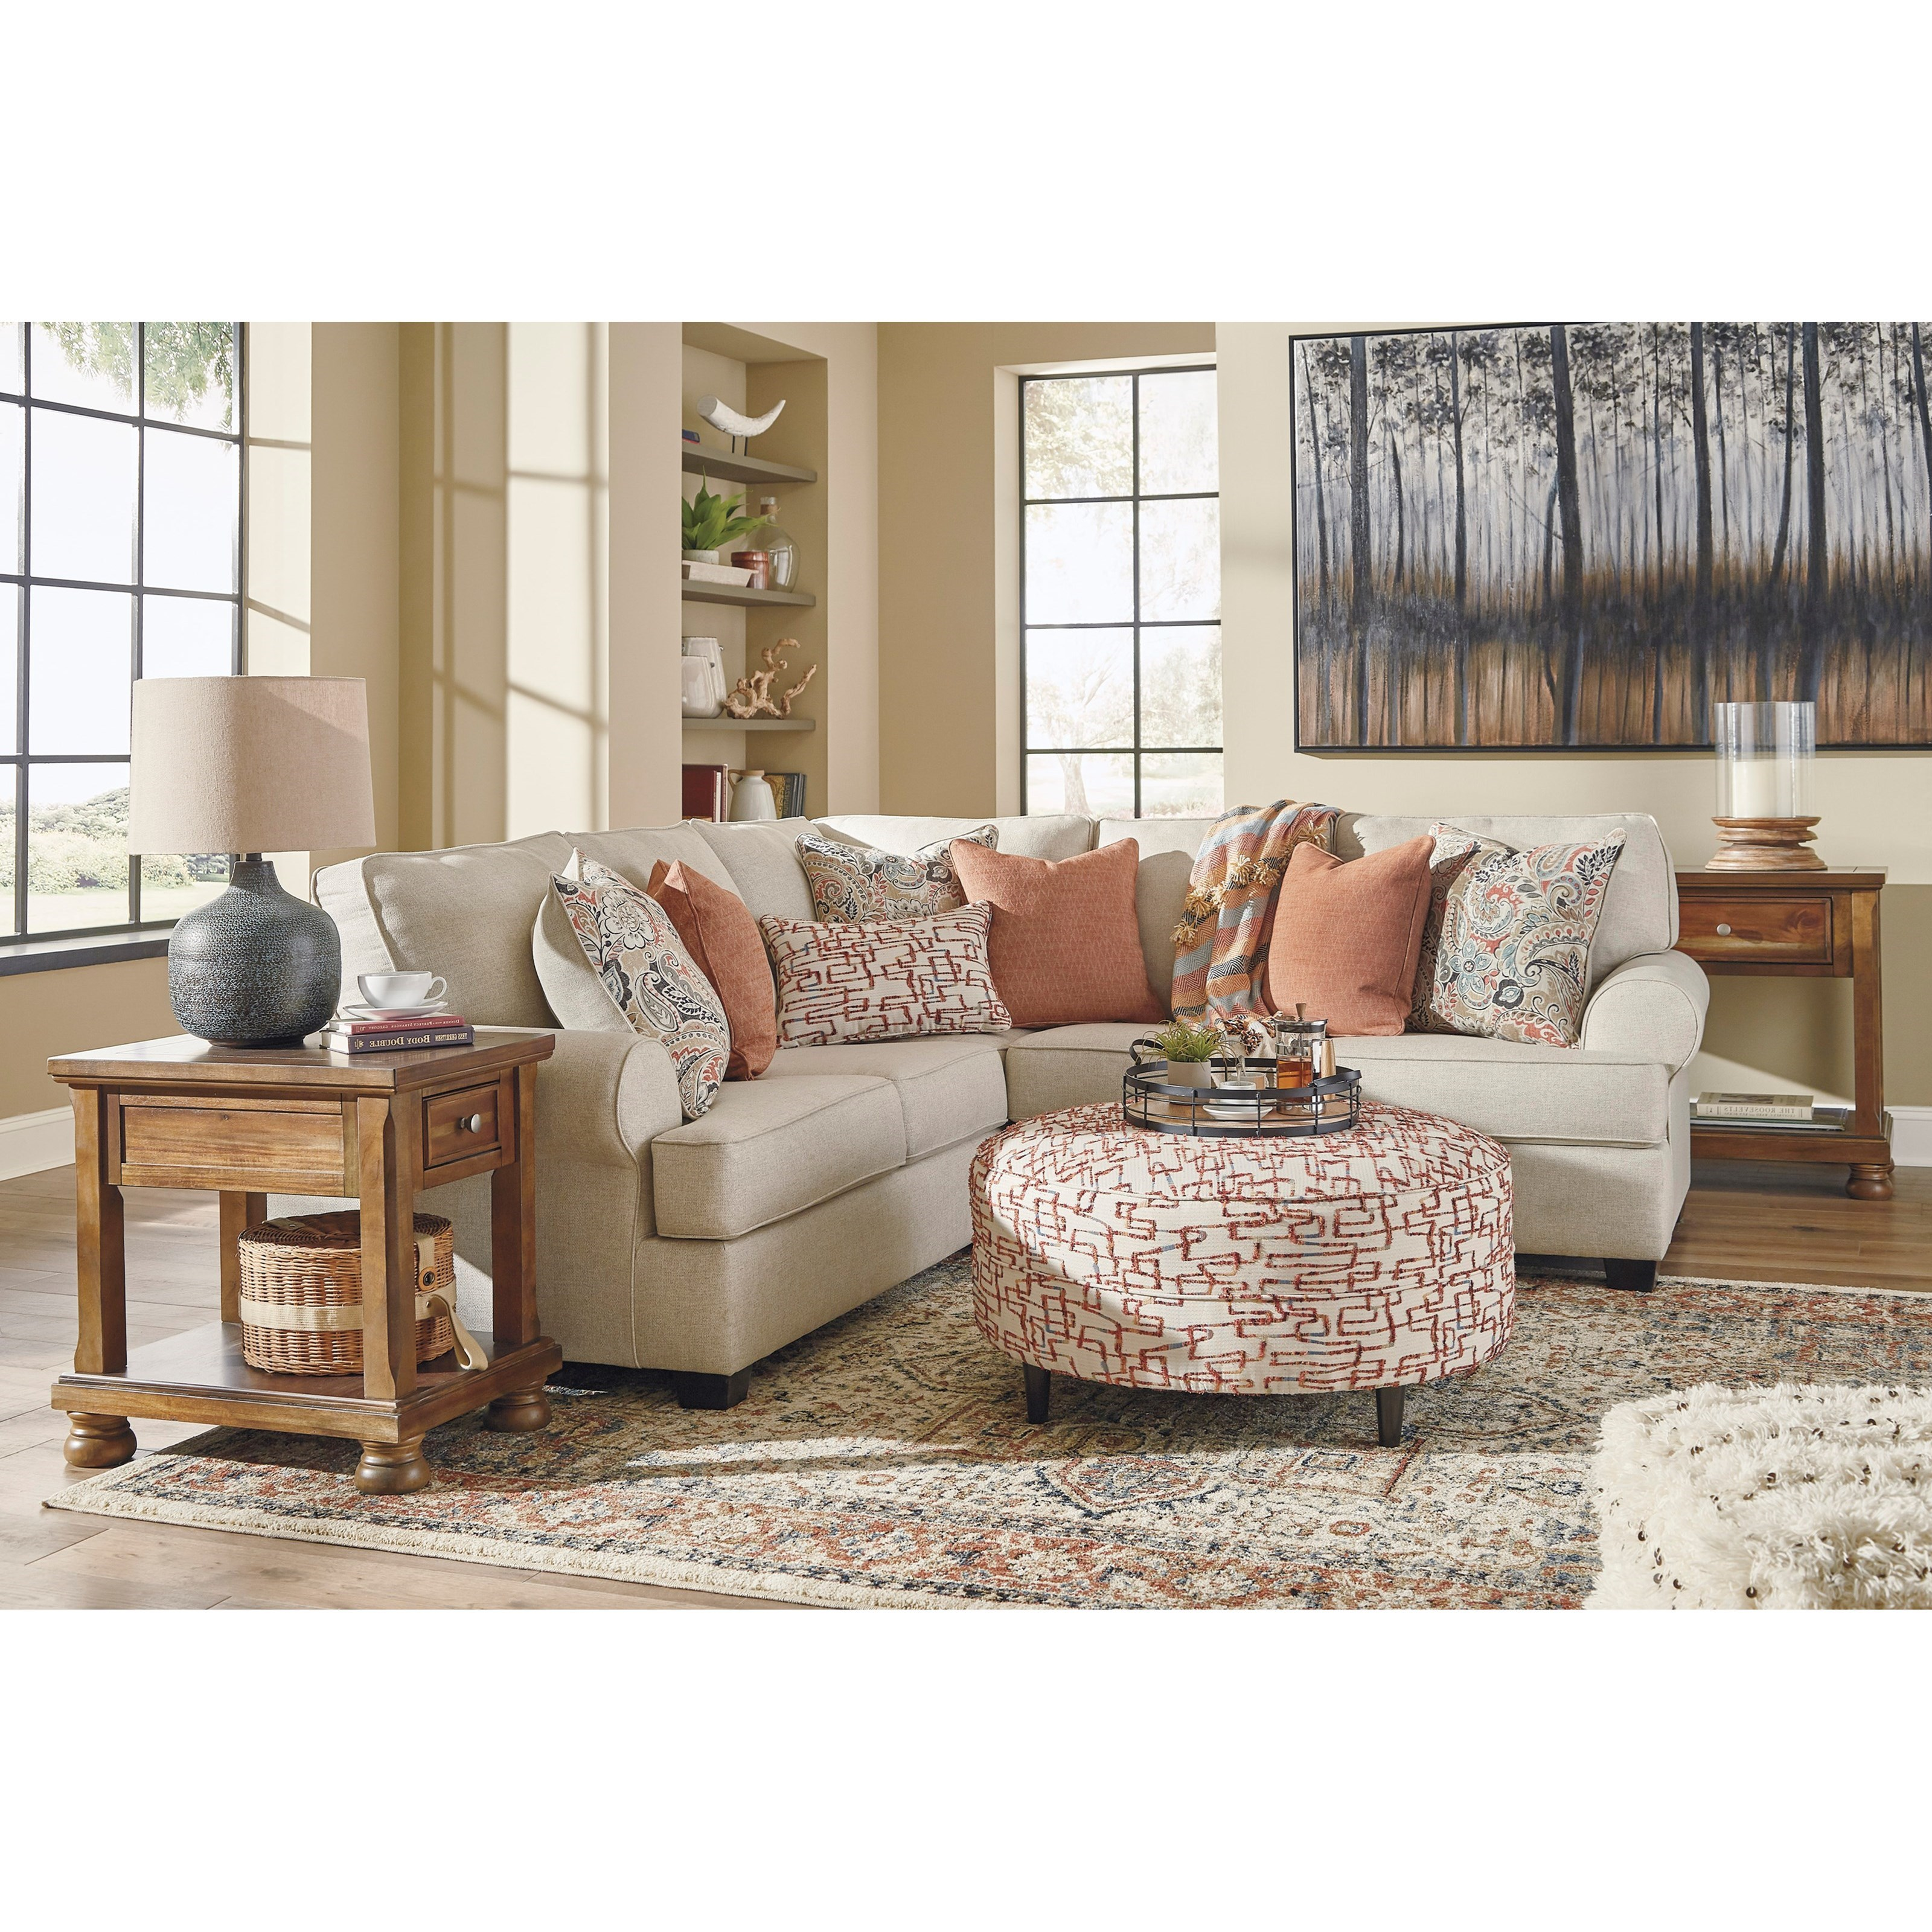 Amici Living Room Group by Signature Design by Ashley at Catalog Outlet